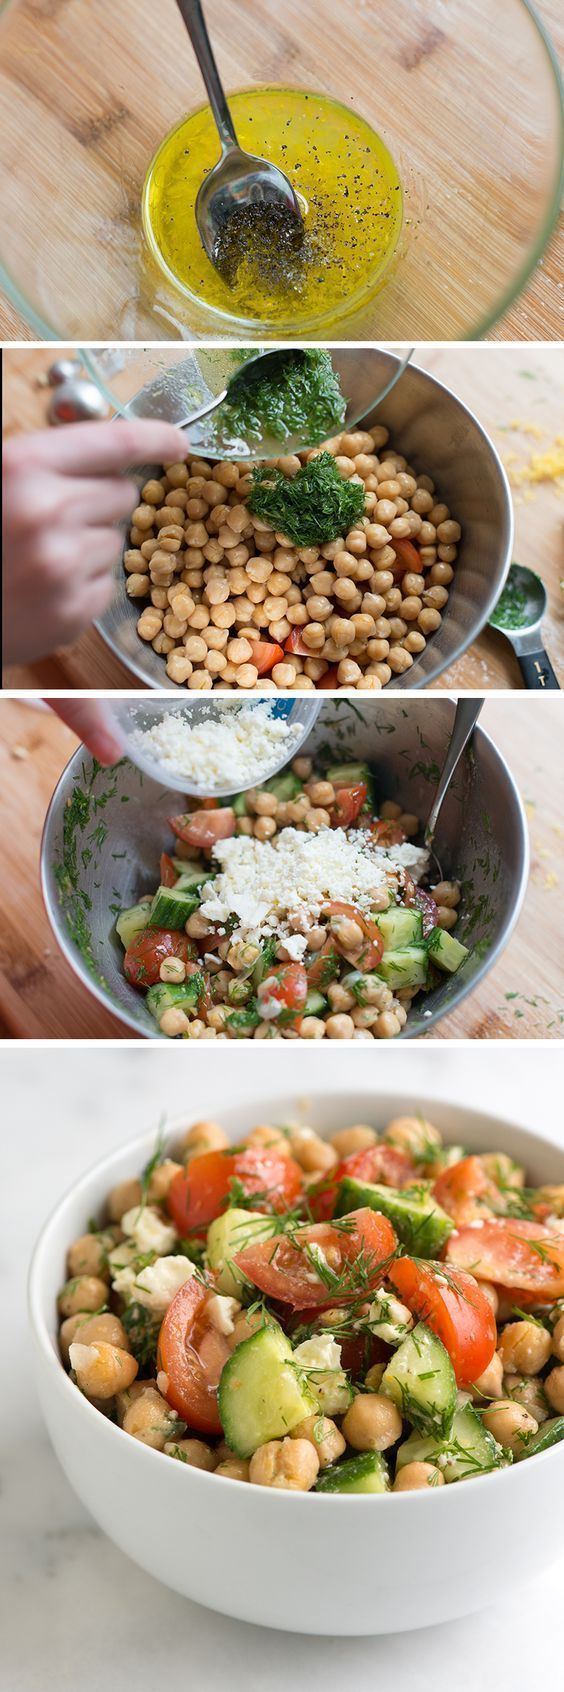 We just love this chickpea salad recipe with bright lemon, fresh dill, crisp cucumber and sweet tomatoes. To make it, we use canned chickpeas, so this one is extra easy. From inspiredtaste.net - @inspiredtaste  #vegetarian #plantbased #recipes